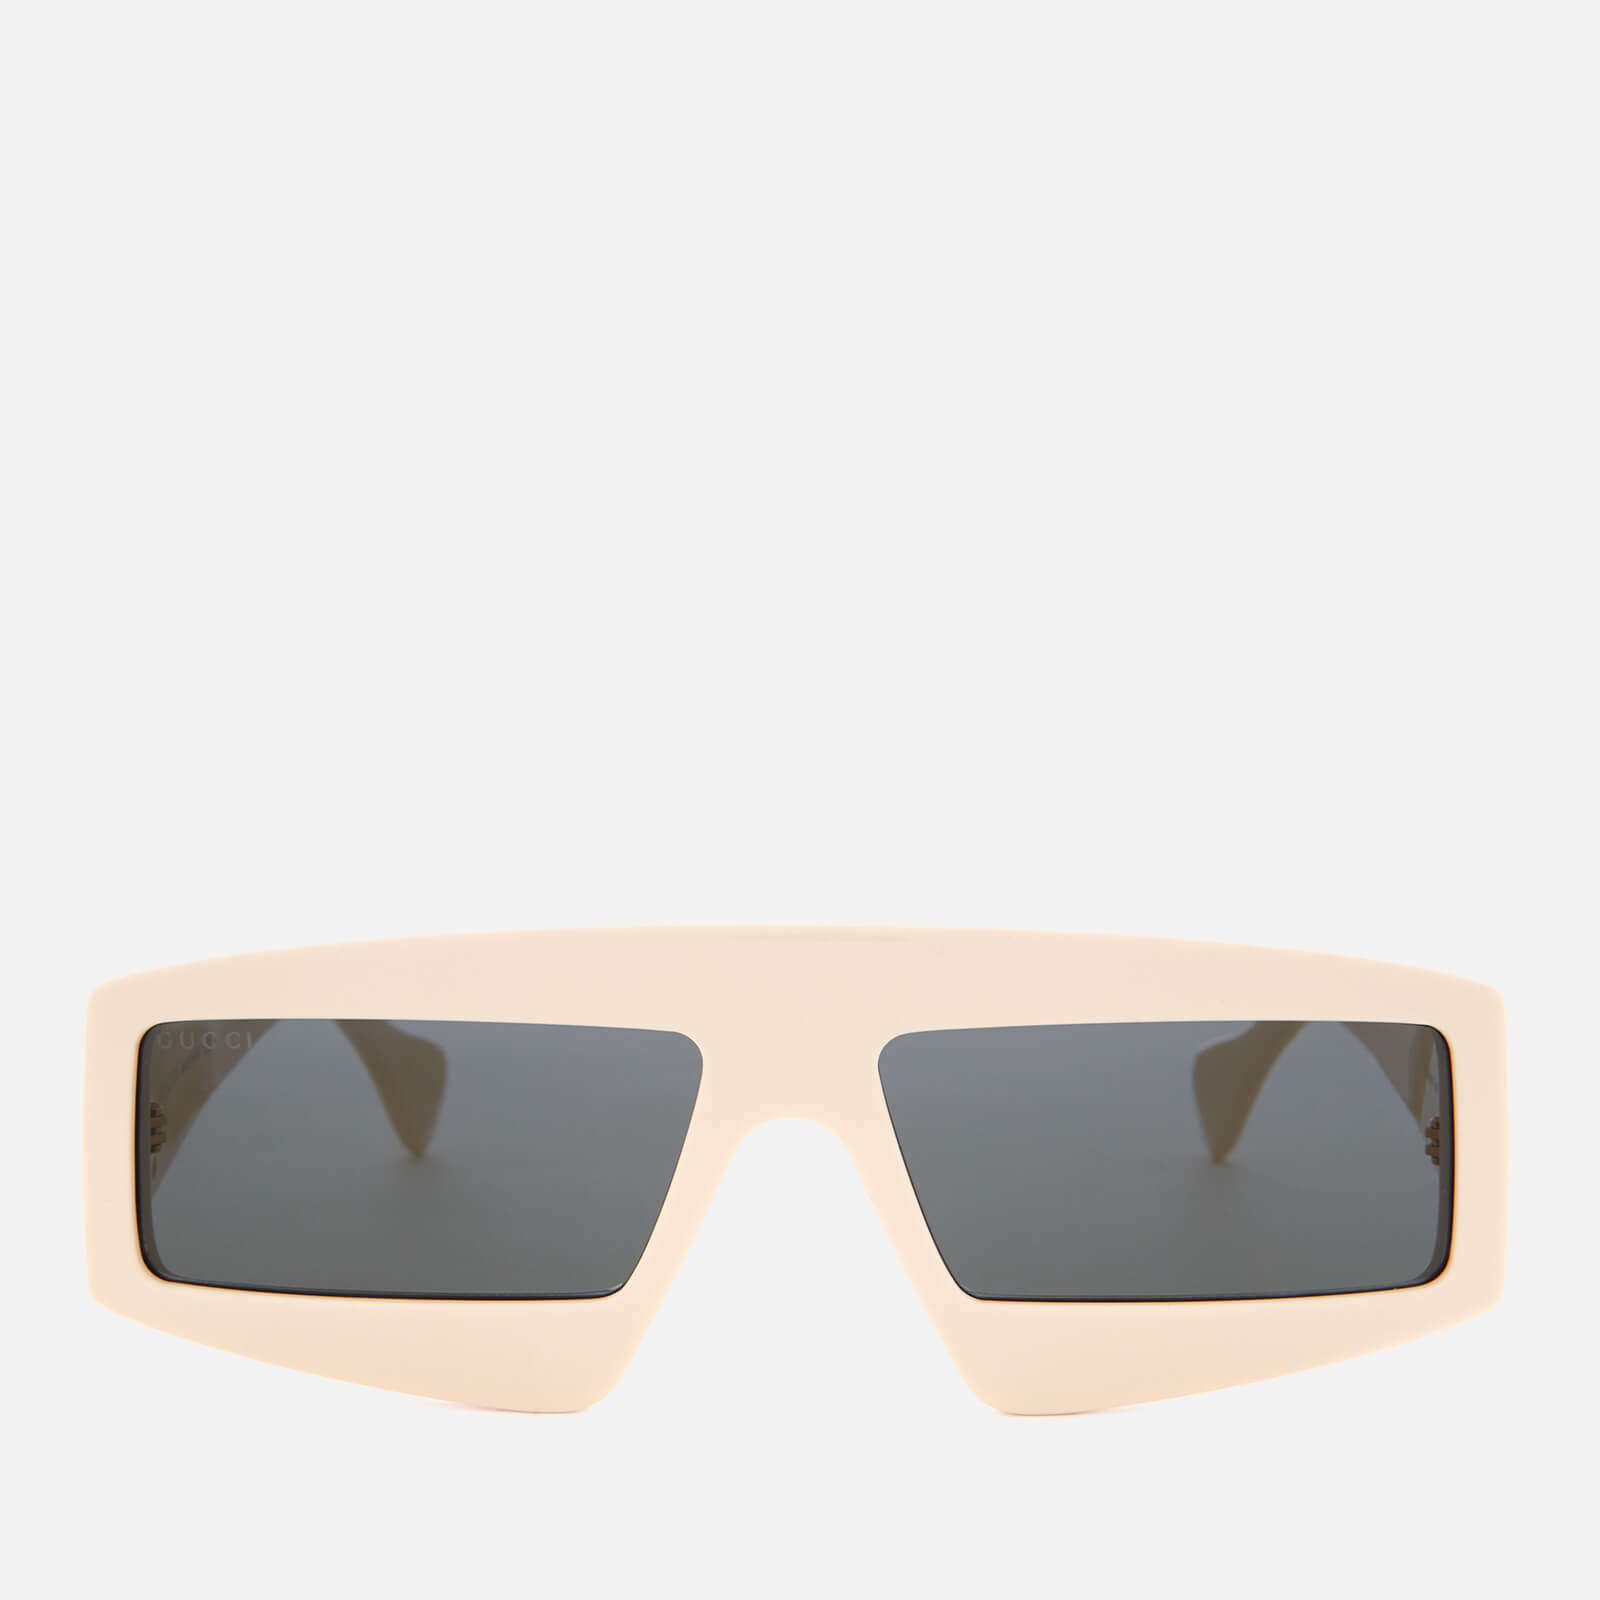 e43bcd92923 Gucci Women s Acetate Sunglasses - Ivory Grey - Free UK Delivery over £50